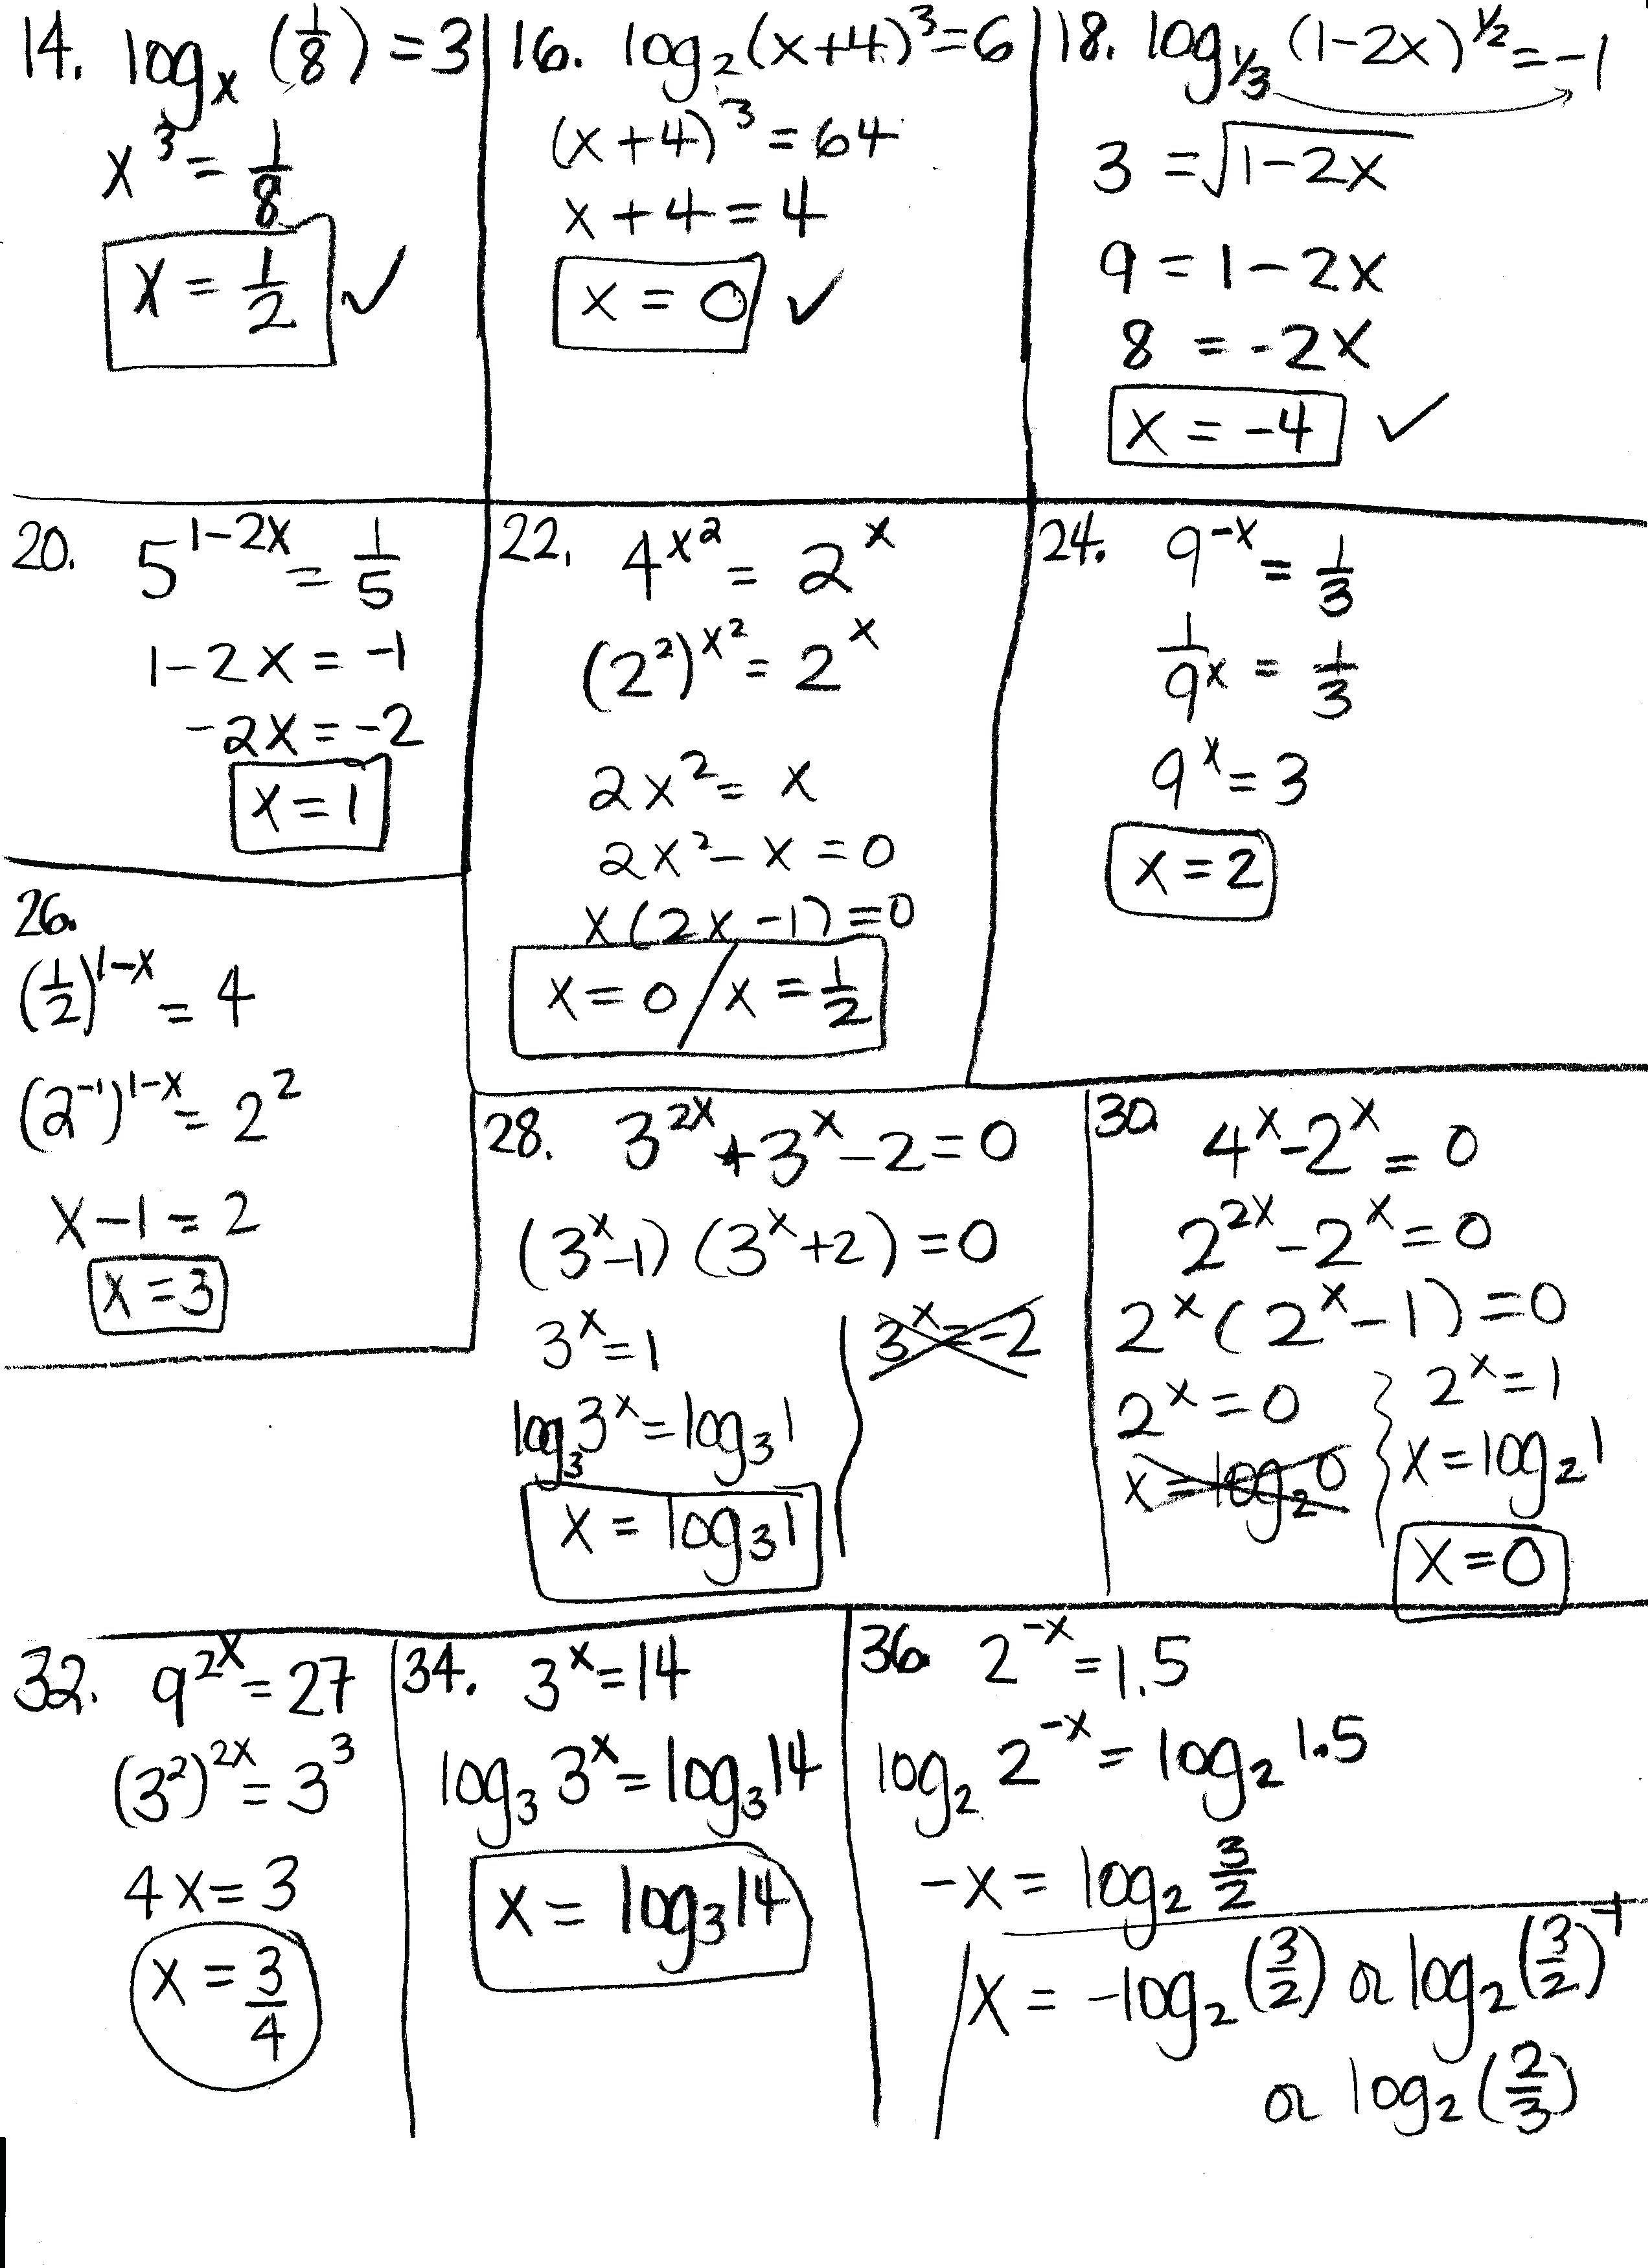 Algebra Log Math Algebra 2 Logarithm And Exponential Functions Test Pertaining To Logarithm Worksheet With Answers